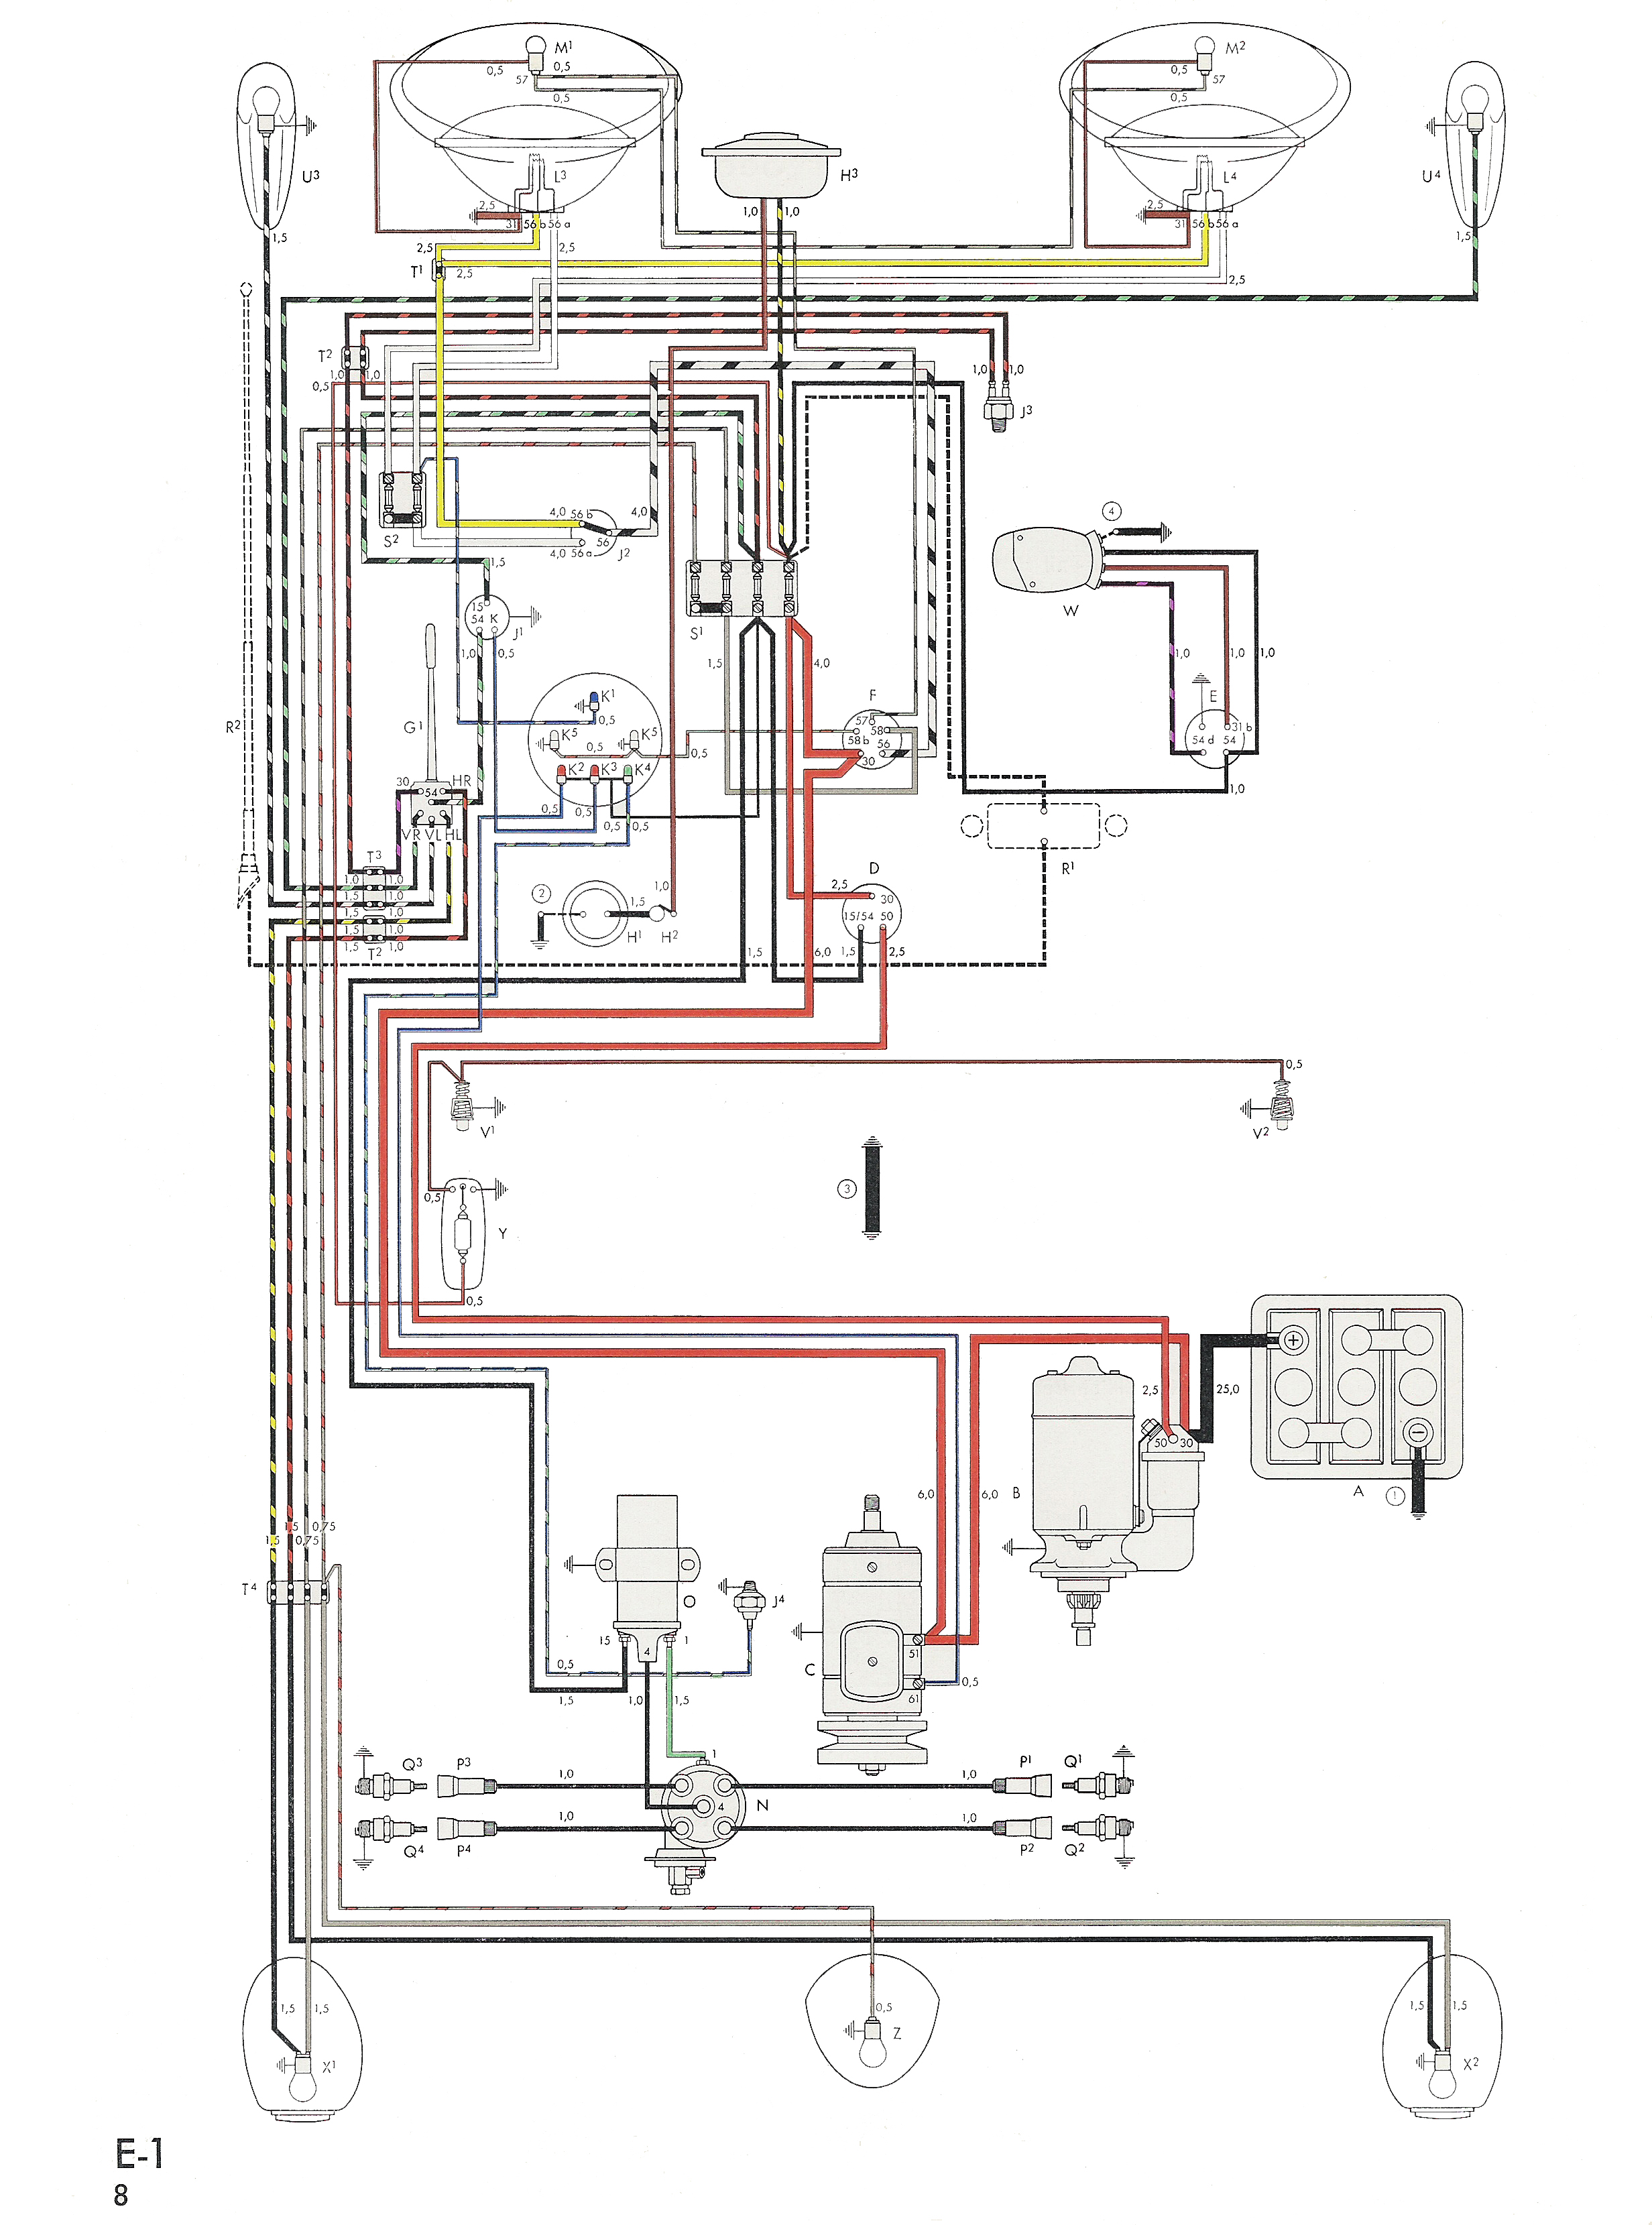 bug_58_USA_300dpi thesamba com type 1 wiring diagrams vw beetle electronic ignition wiring diagram at bayanpartner.co